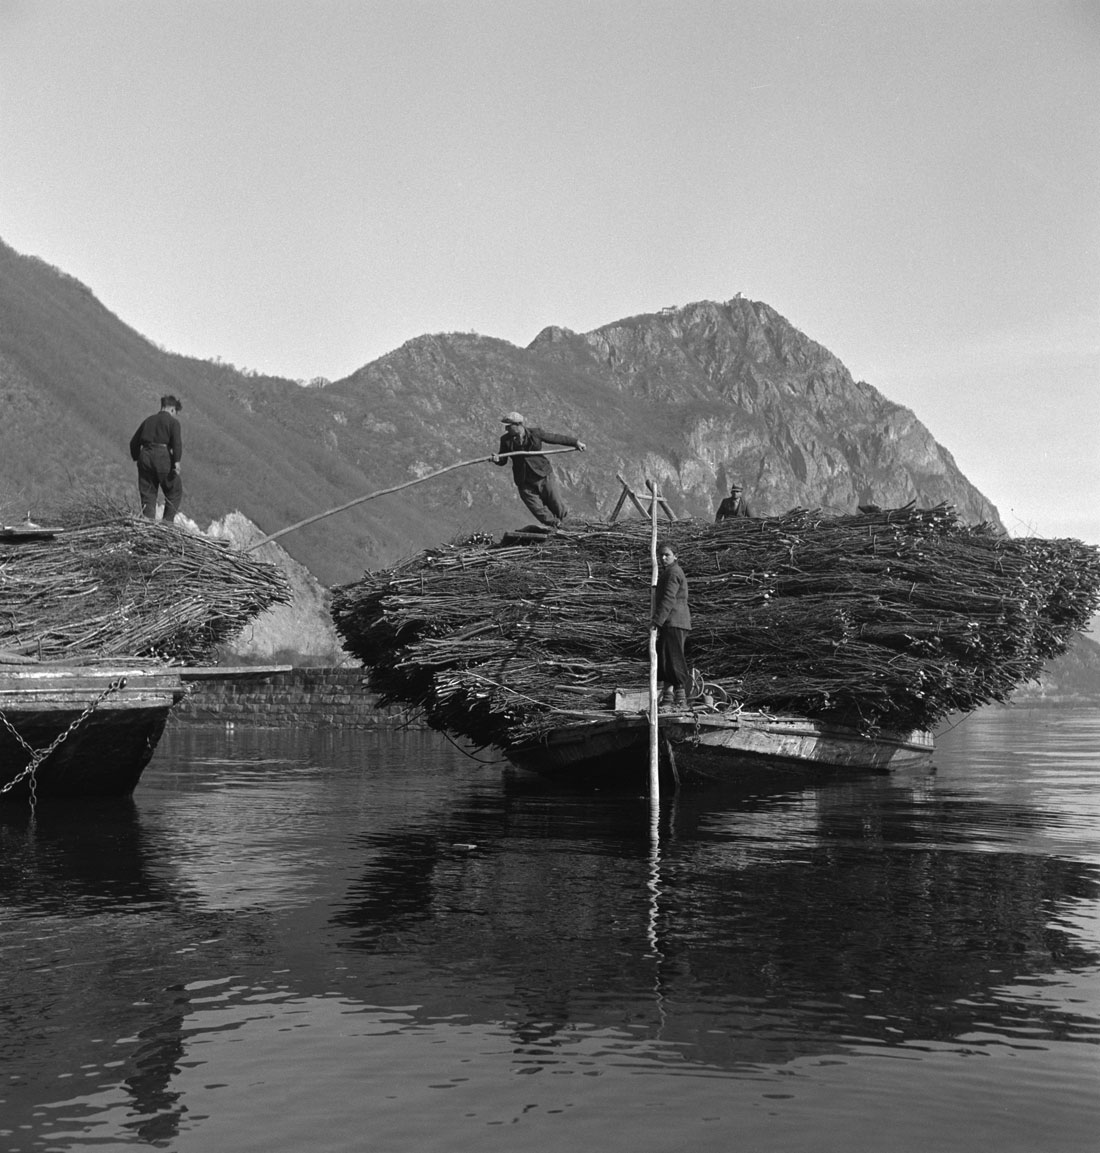 Anon. 'Using boats to transport wood and stone on Lake Lugano' 1940. © Swiss National Museum